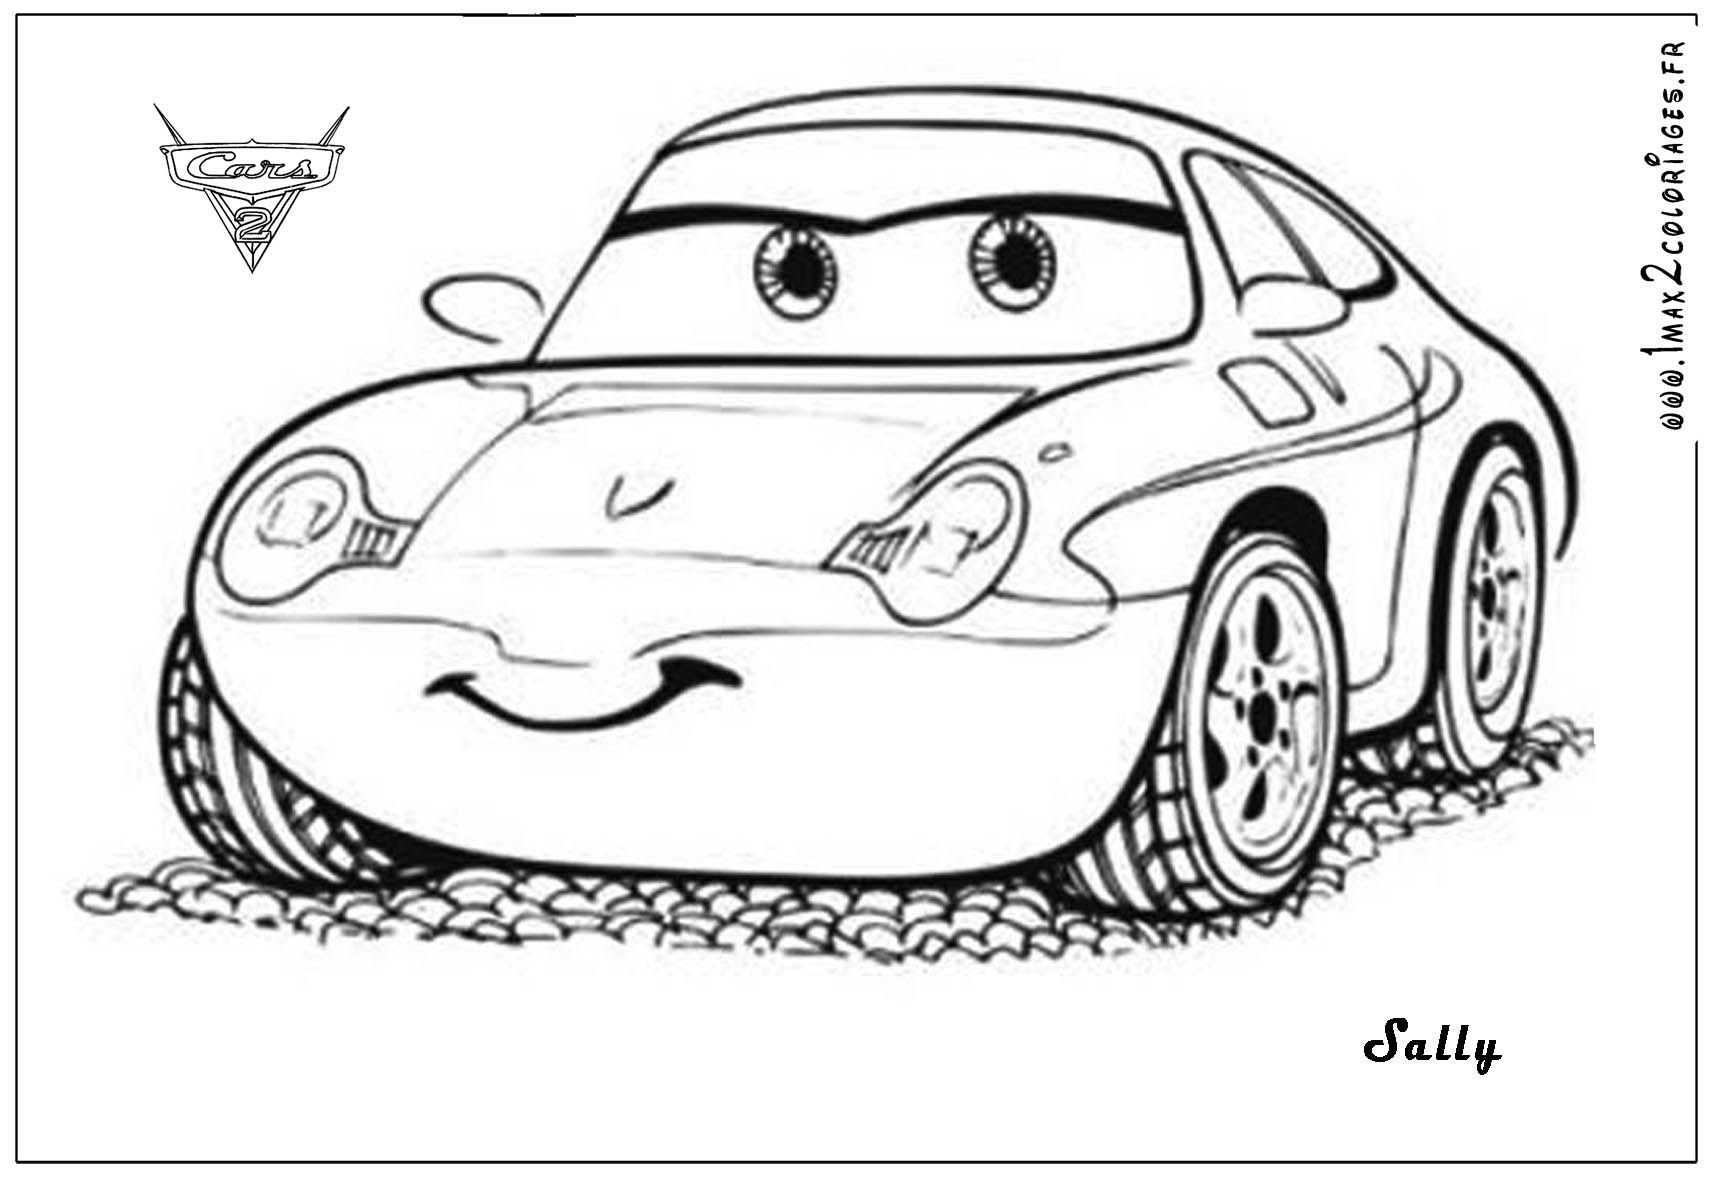 lighting mcqueen coloring lightning mcqueen coloring pages to download and print for coloring lighting mcqueen